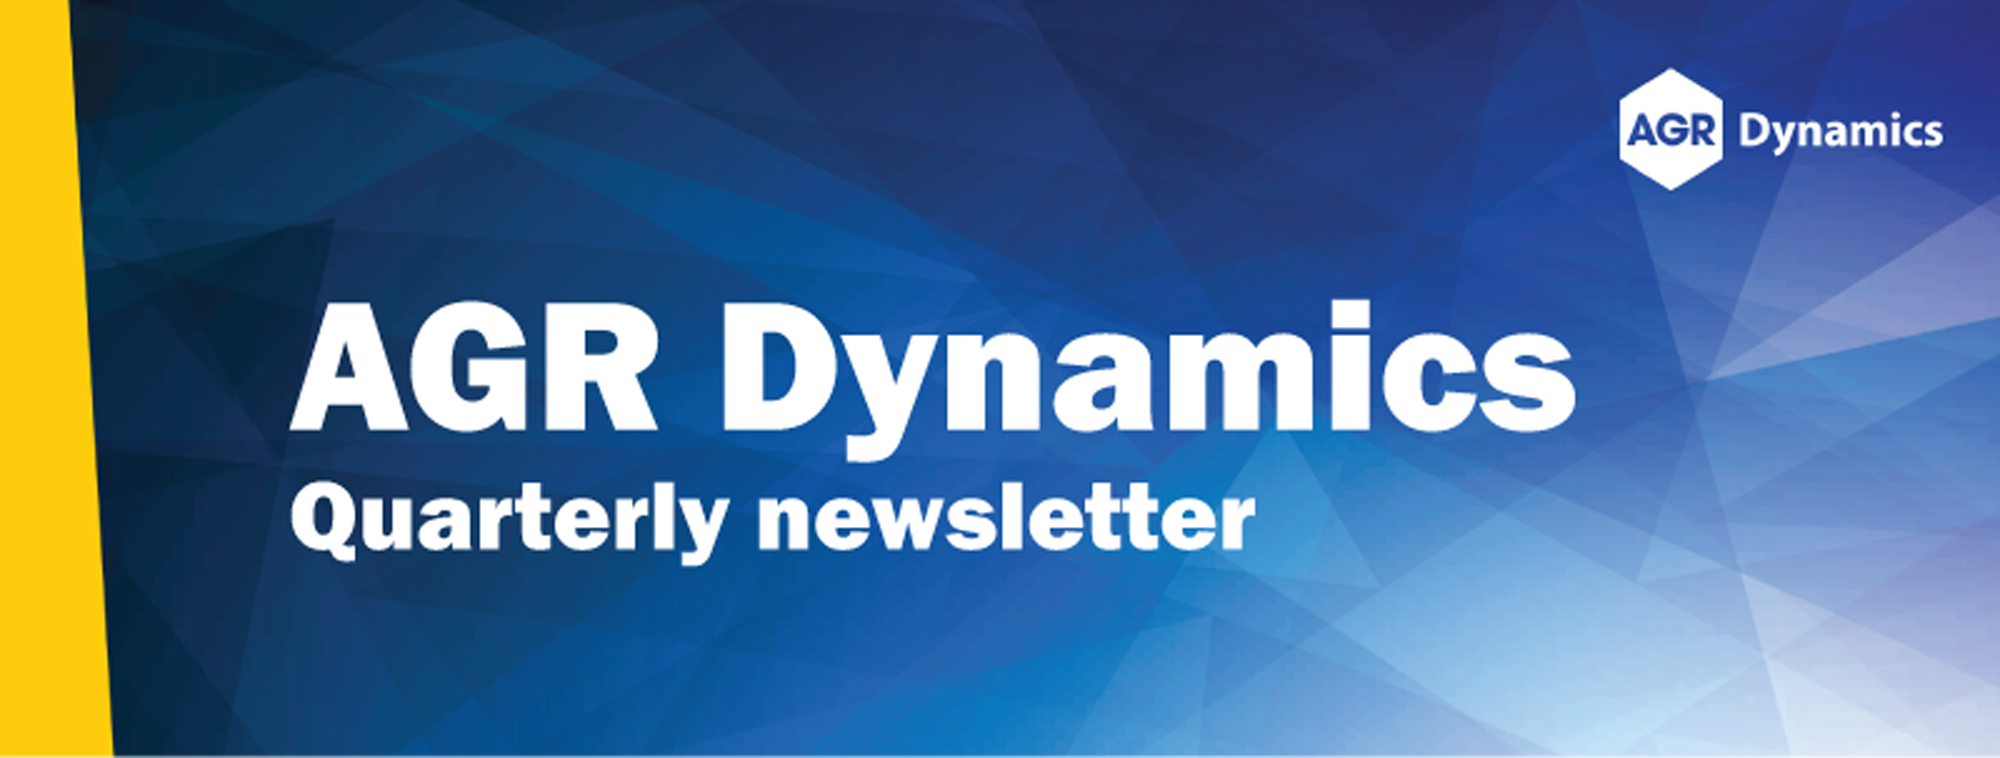 AGR Dynamics Newsletter